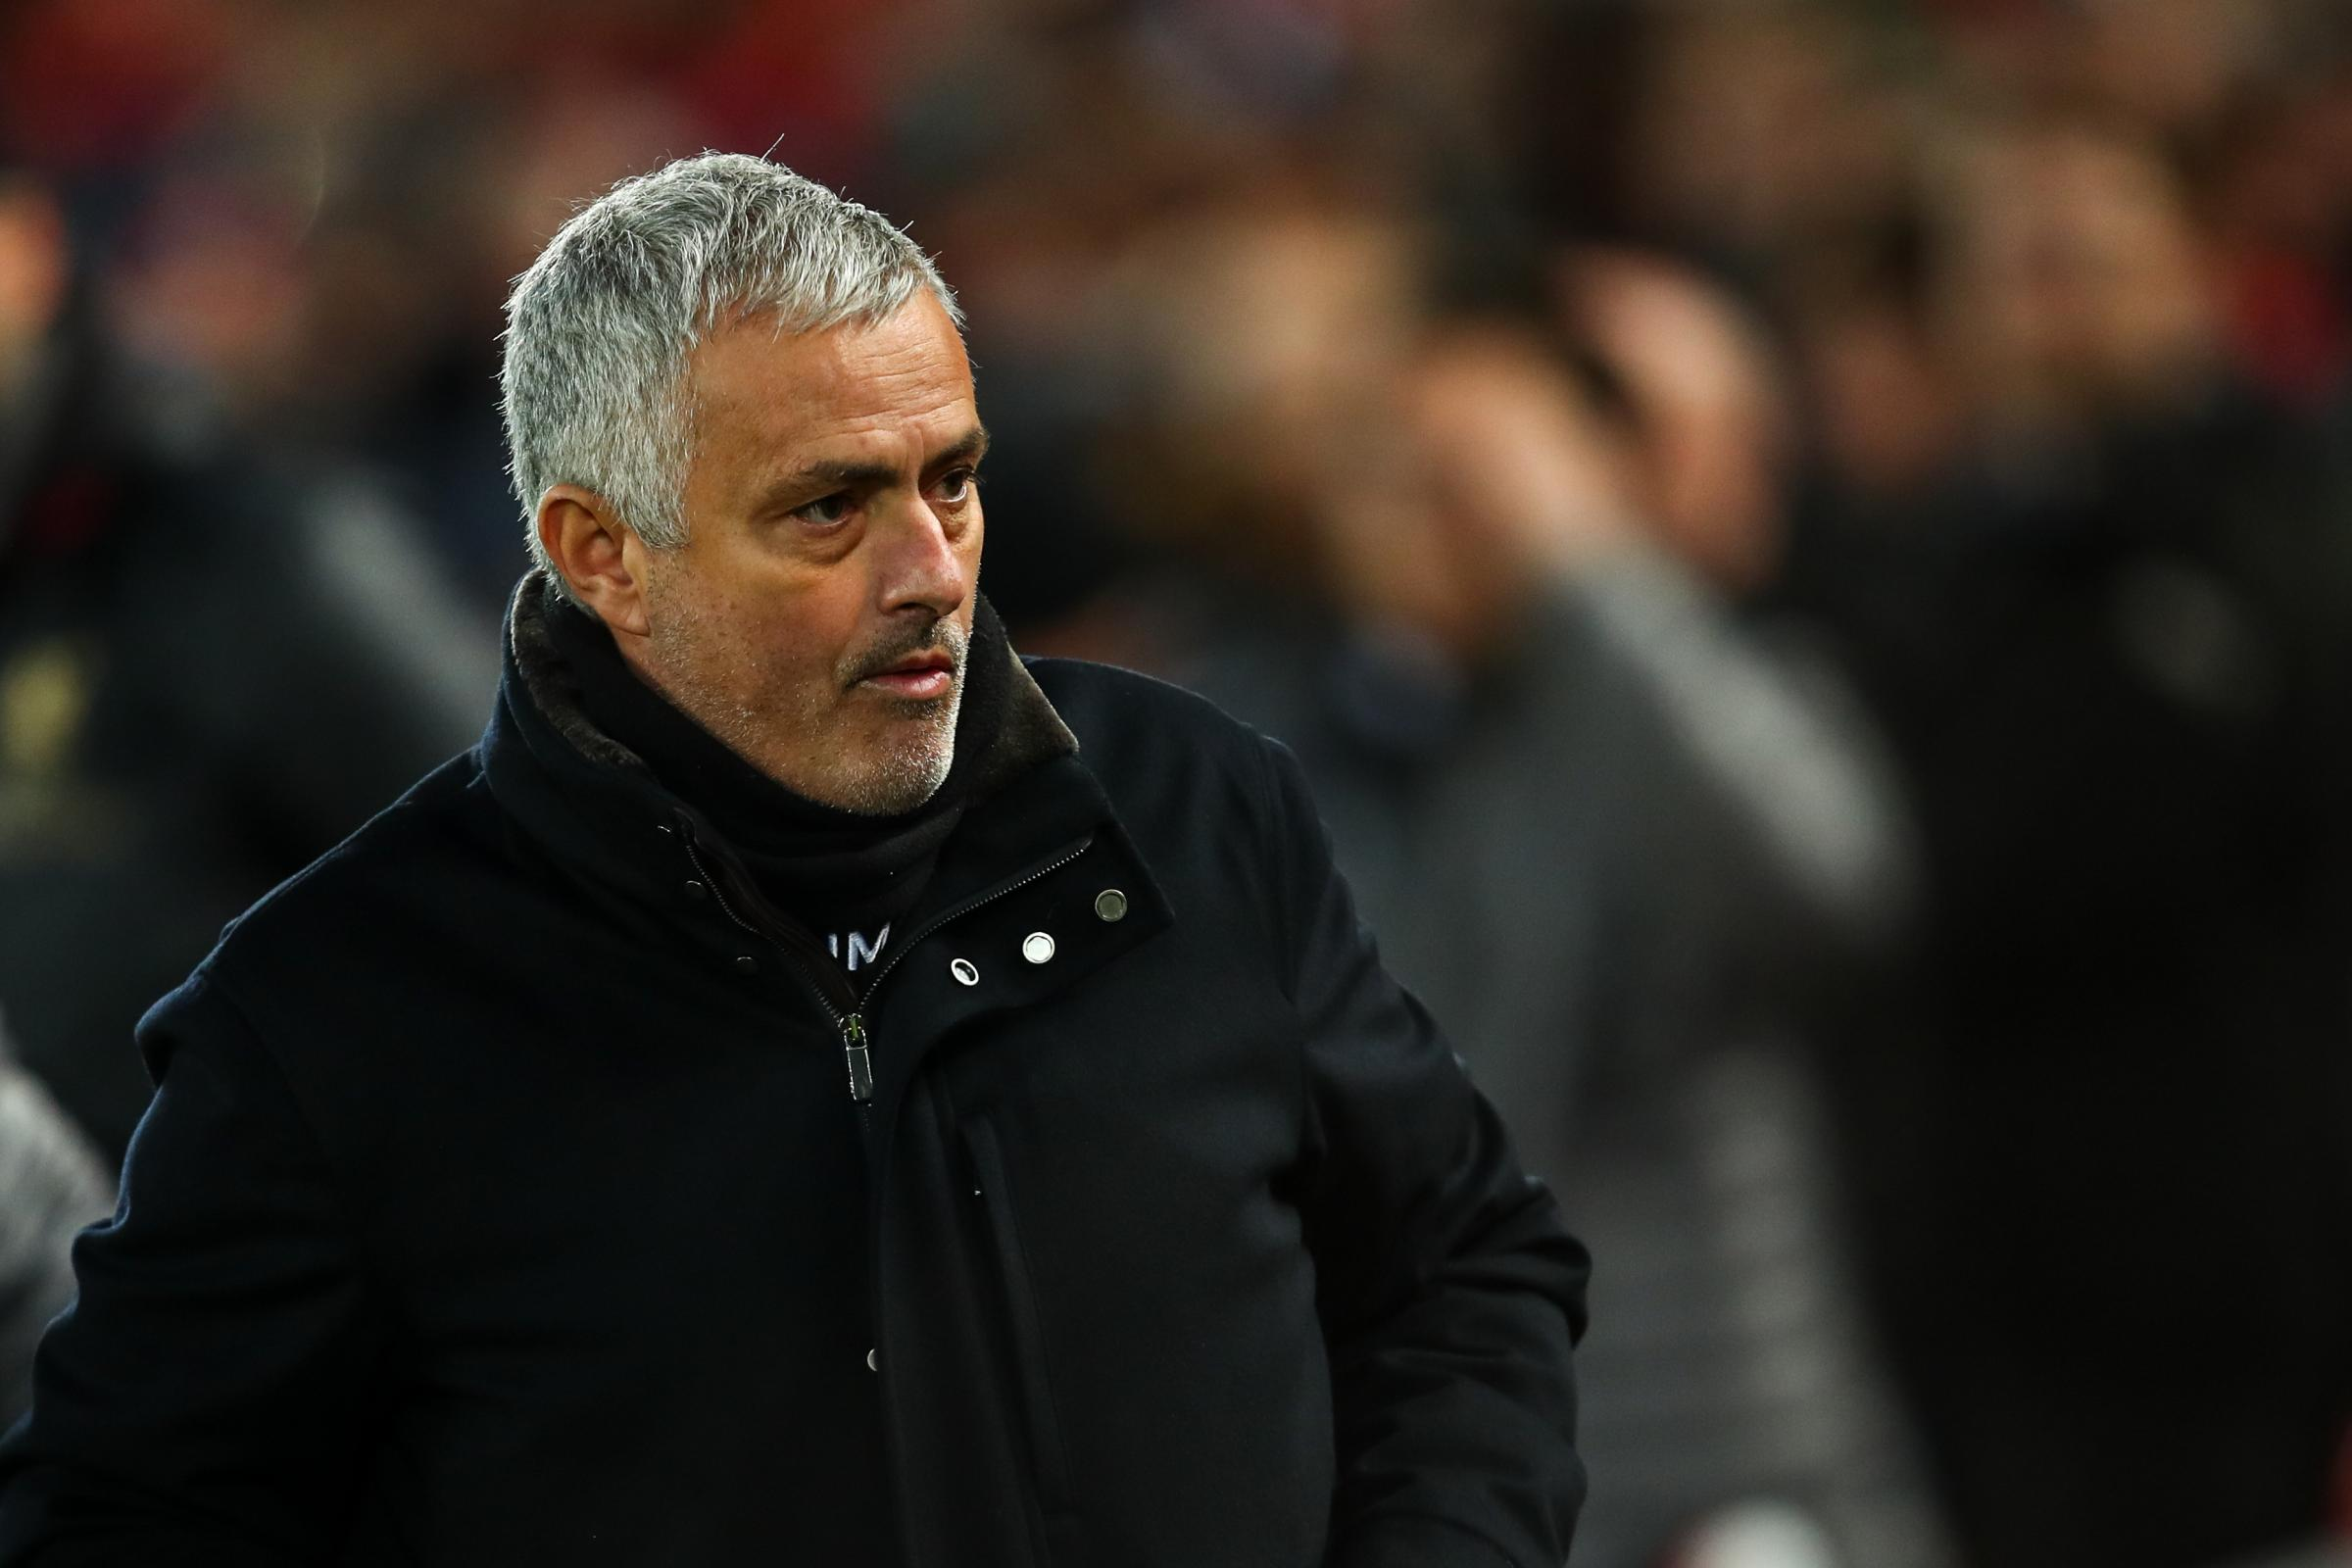 Twitter reacts to Manchester United firing Jose Mourinho